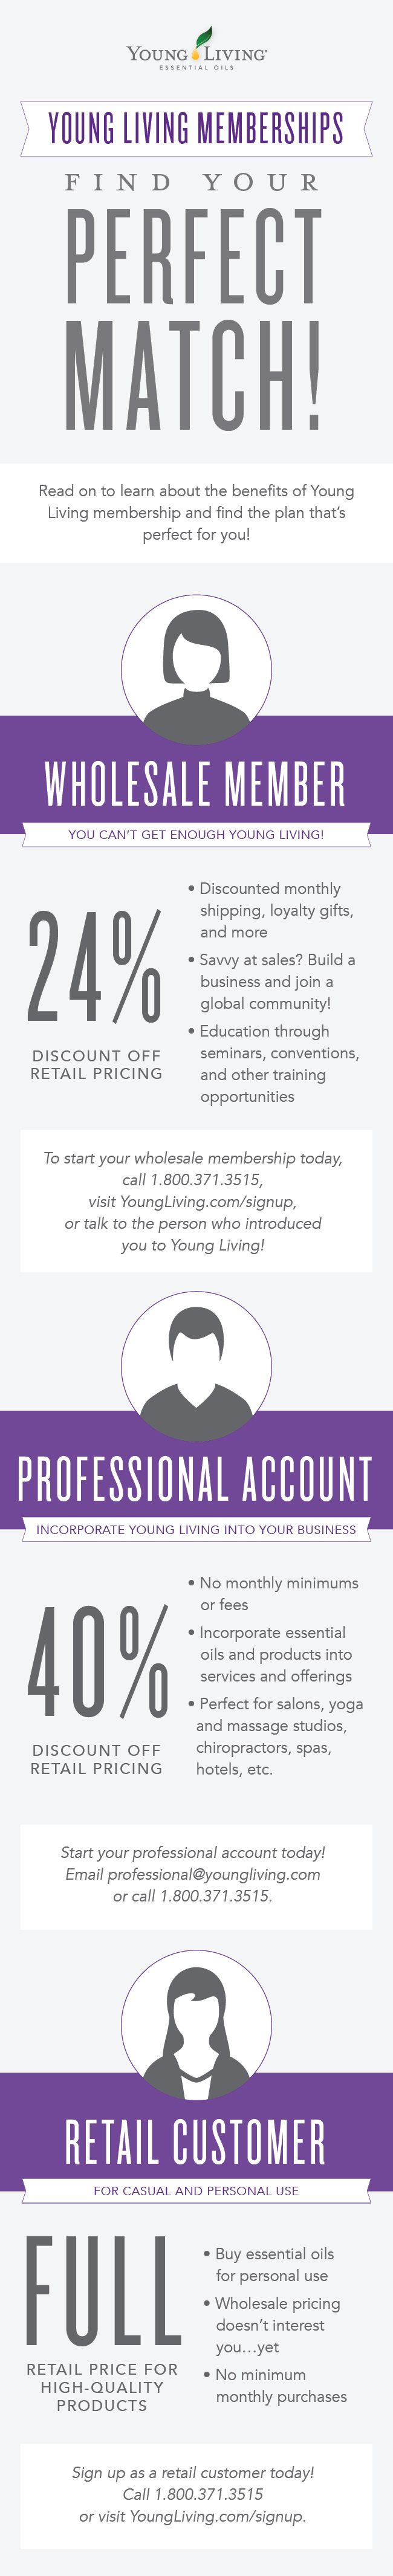 Blog-YoungLivingMemberships_Infographic_US-2.jpg